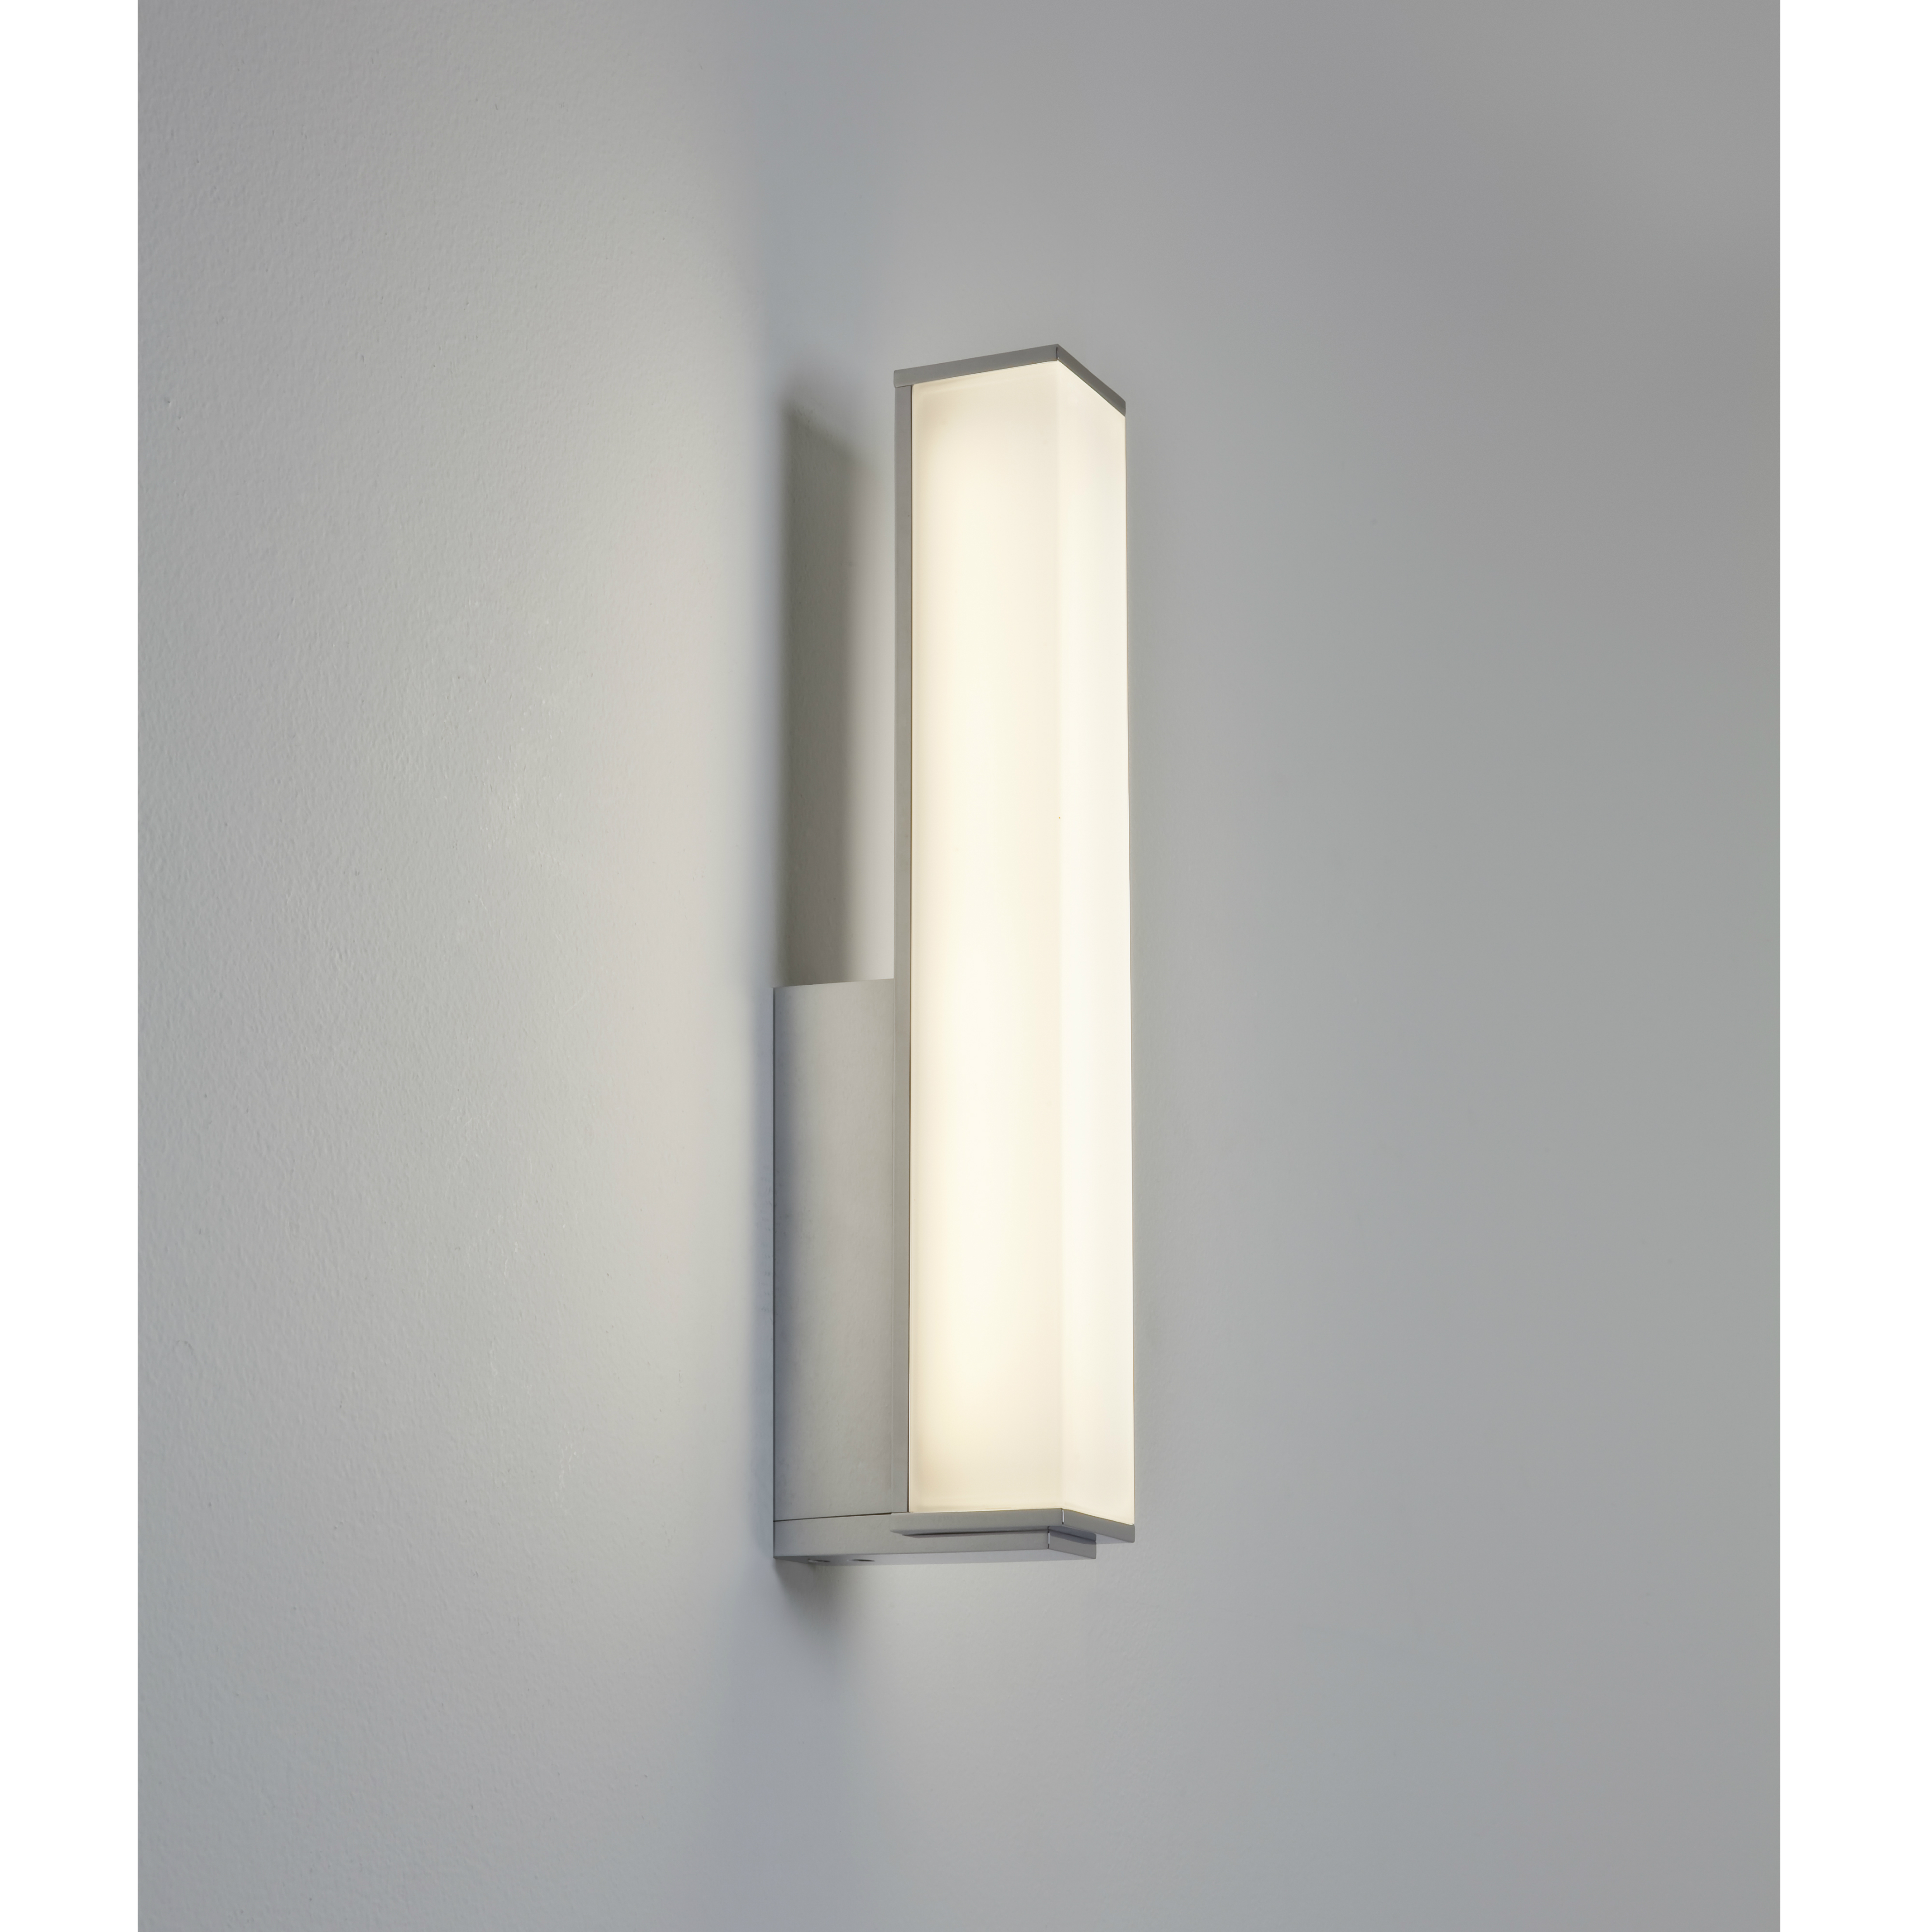 Bathroom Wall Lights | Product Categories | Light Innovation